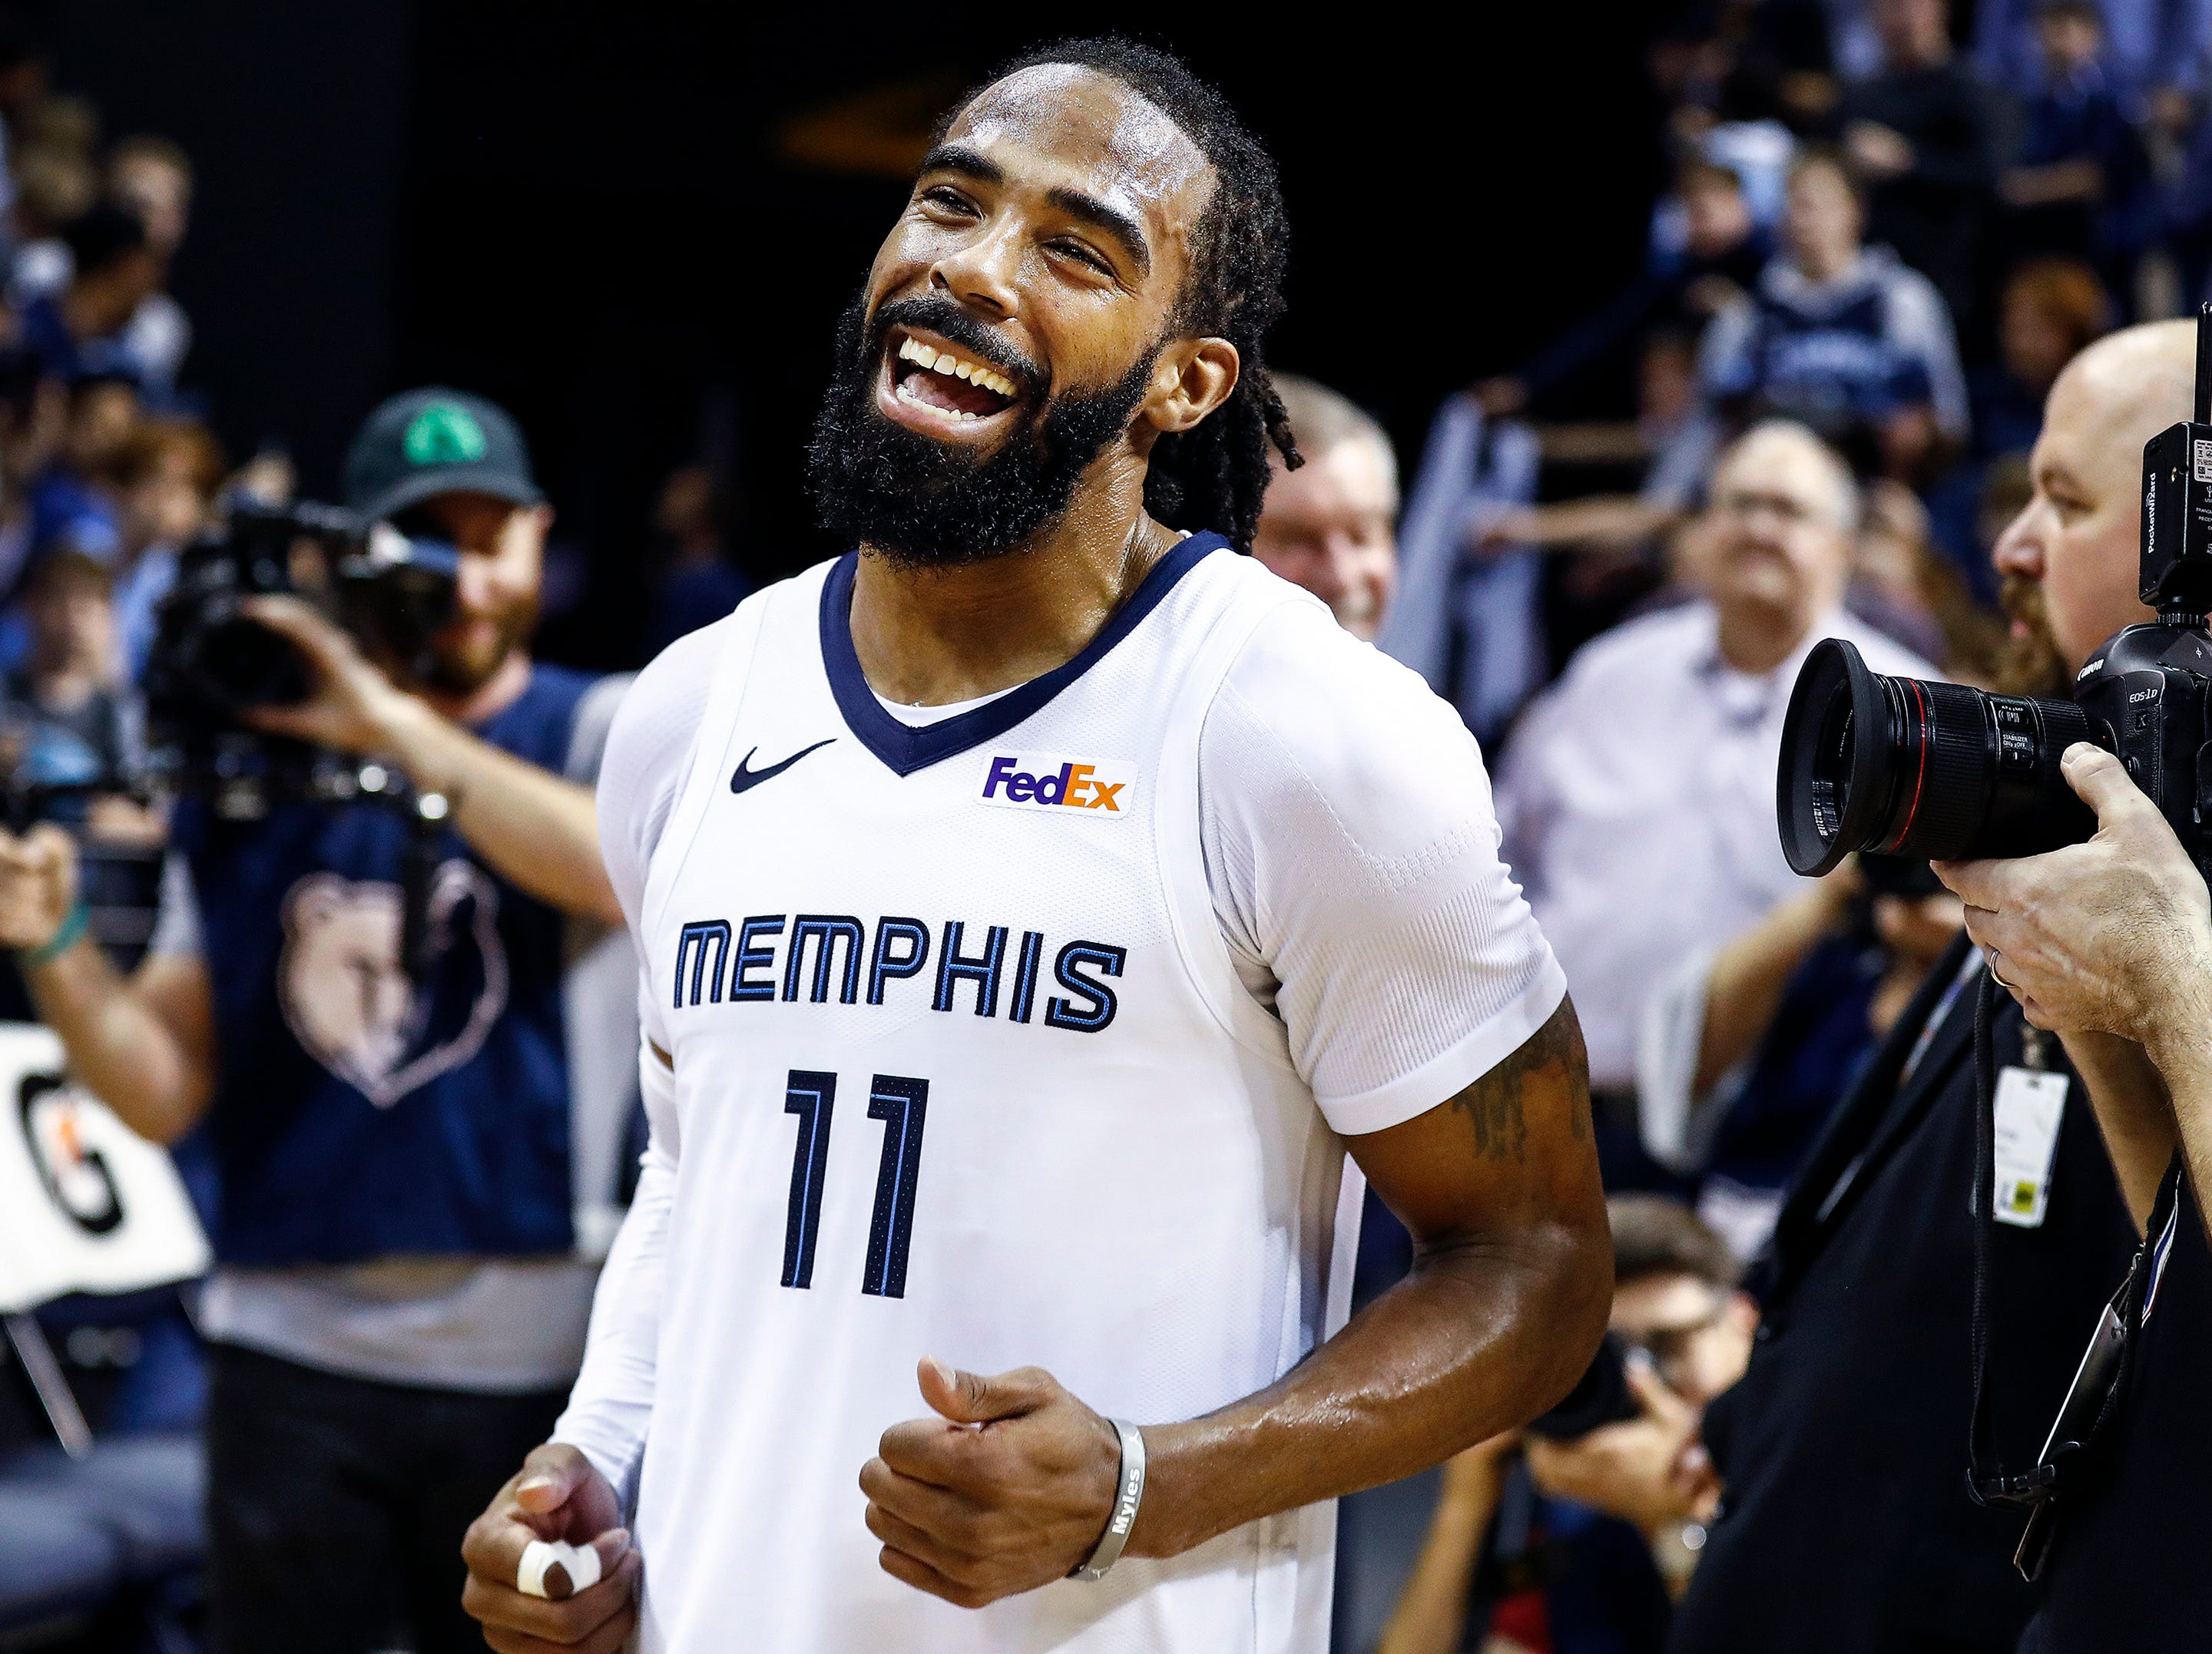 Memphis Grizzlies guard Mike Conley celebrates a 108-106 victory over the Minnesota Timberwolves at the FedExForum in Memphis, Tenn., Tuesday, February 5, 2019.